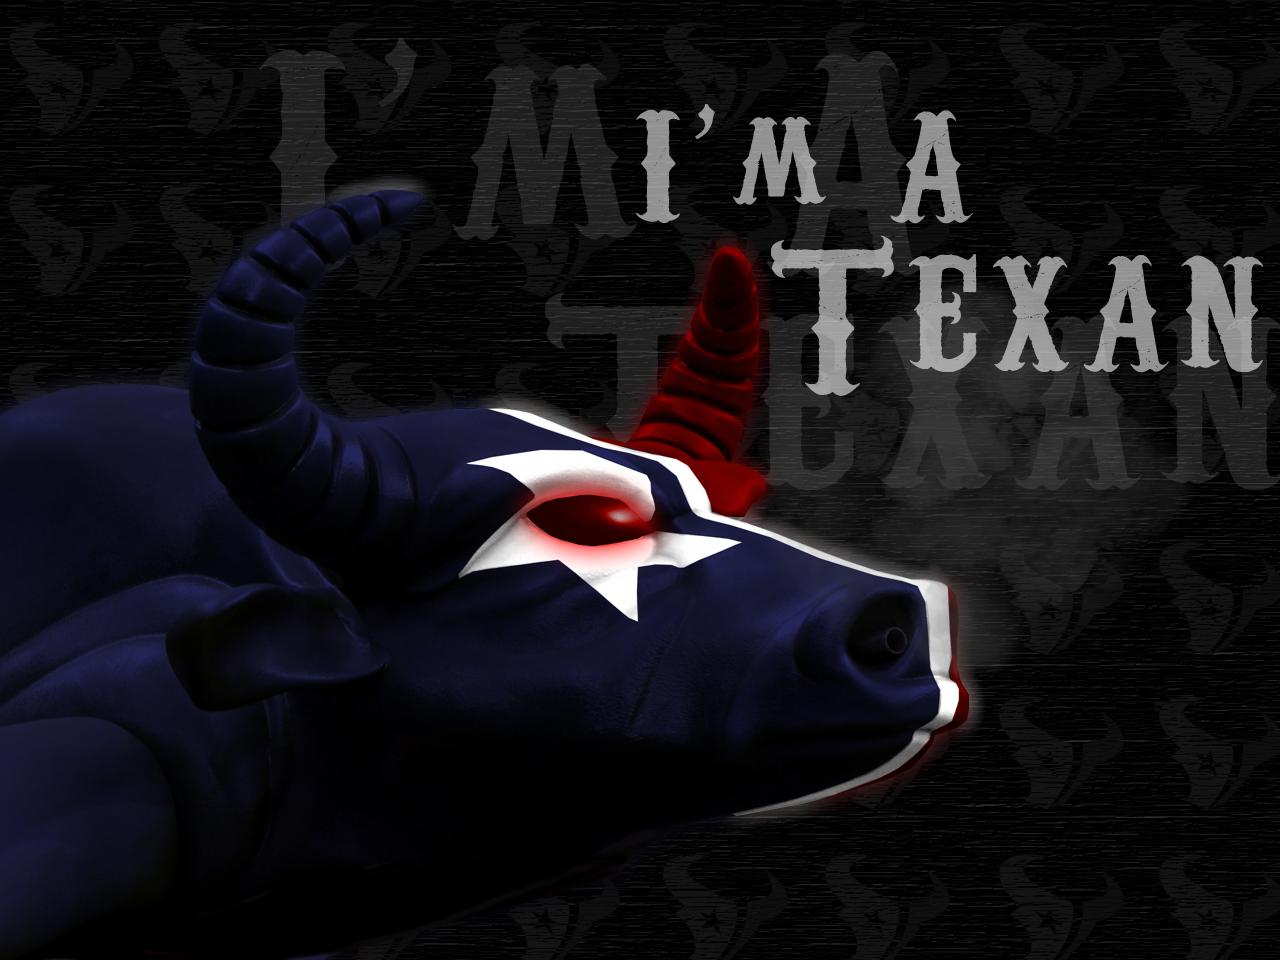 Texans Wallpapers 1280 960 High Definition Wallpaper HD Wallpapers 1280x960